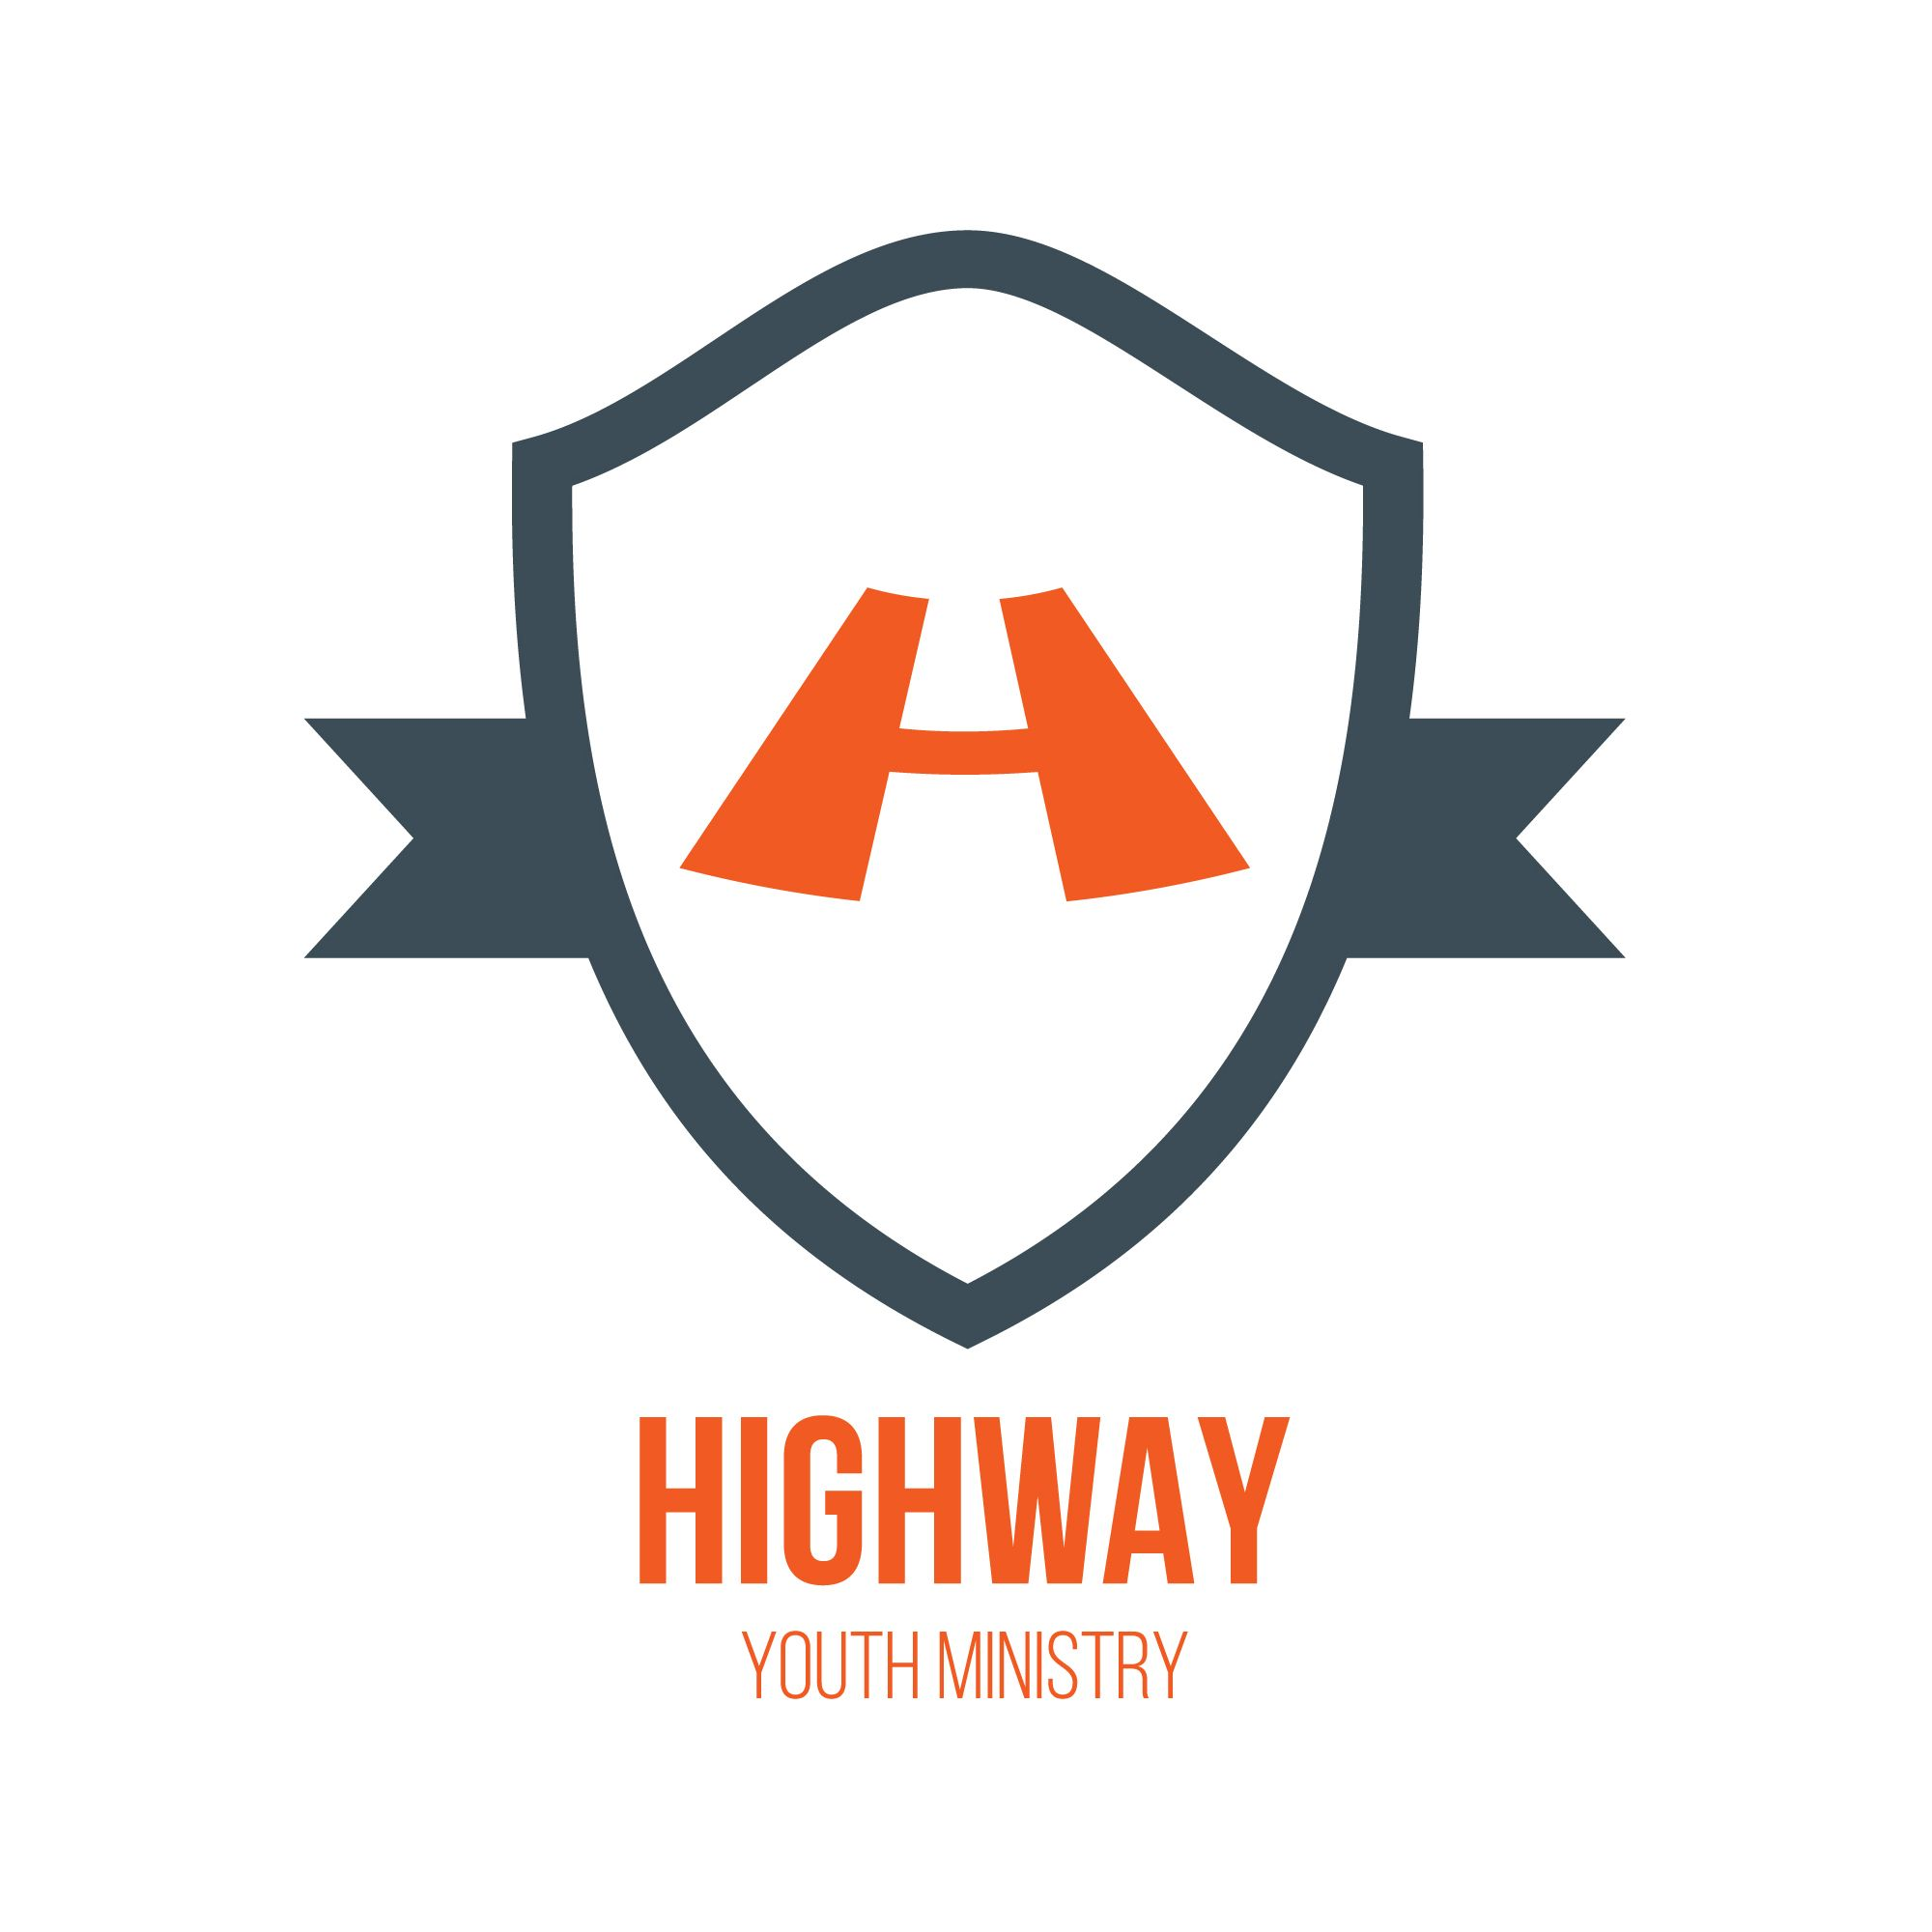 highway youth ministry youth group logos youth group logo ideas rh pinterest ie youth group logo maker youth group logo maker